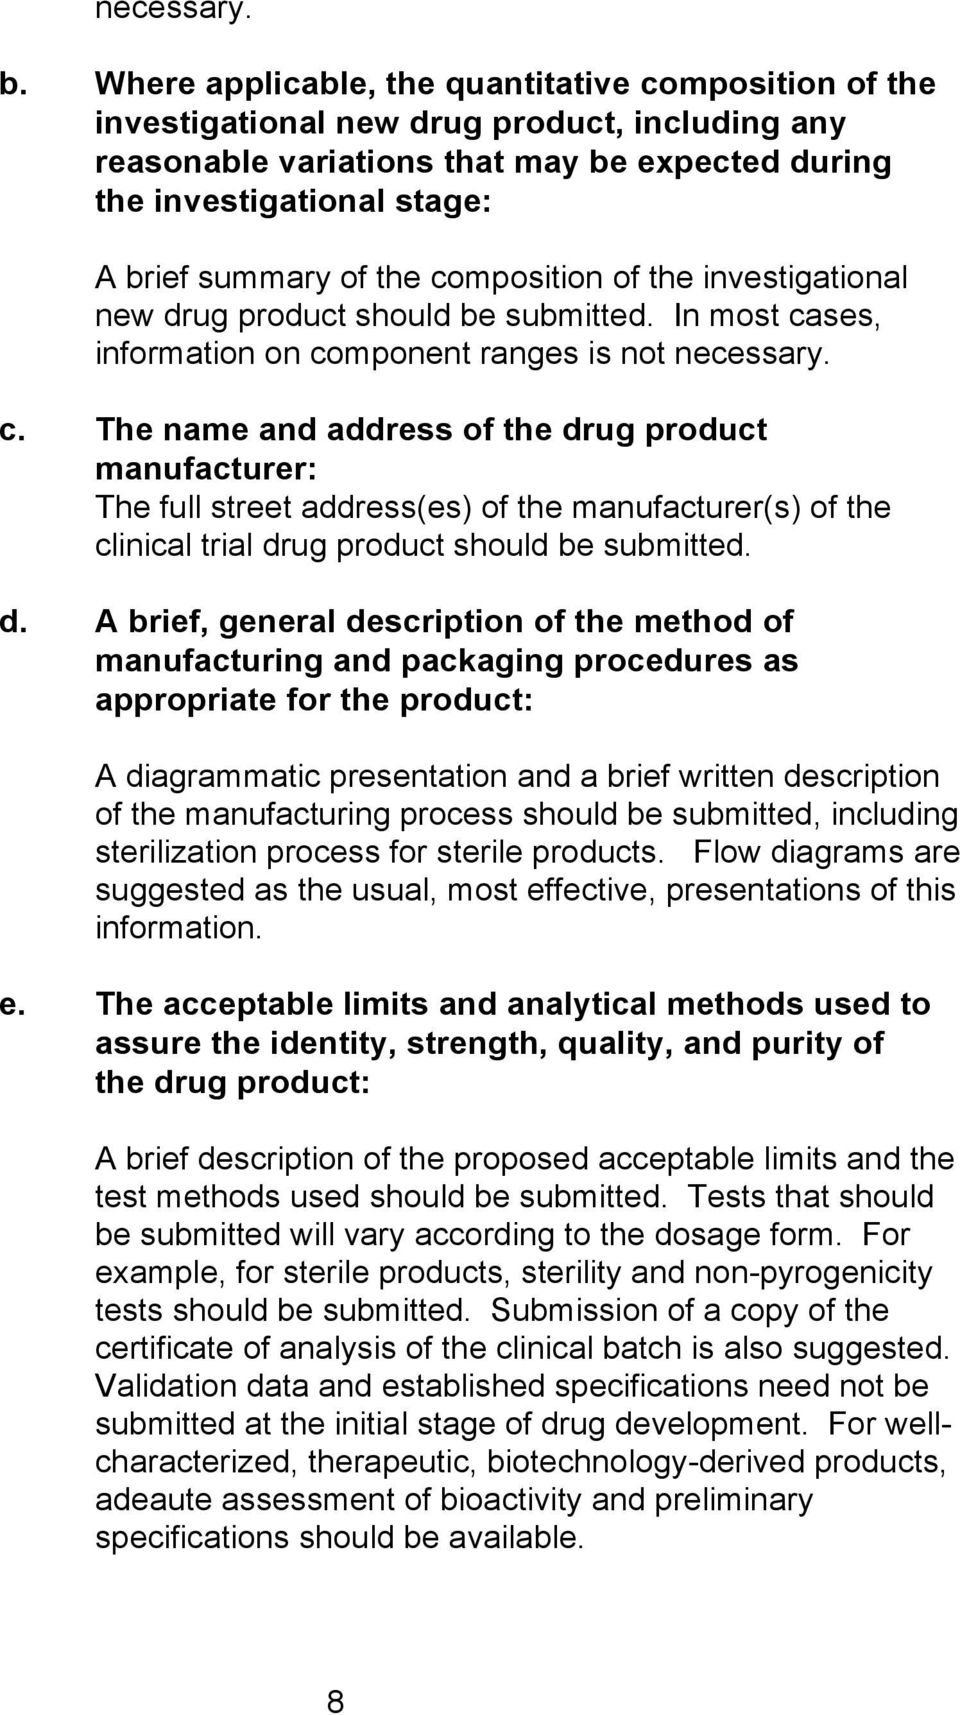 the composition of the investigational new drug product should be submitted. In most cases, information on component ranges is not necessary. c. The name and address of the drug product manufacturer: The full street address(es) of the manufacturer(s) of the clinical trial drug product should be submitted.